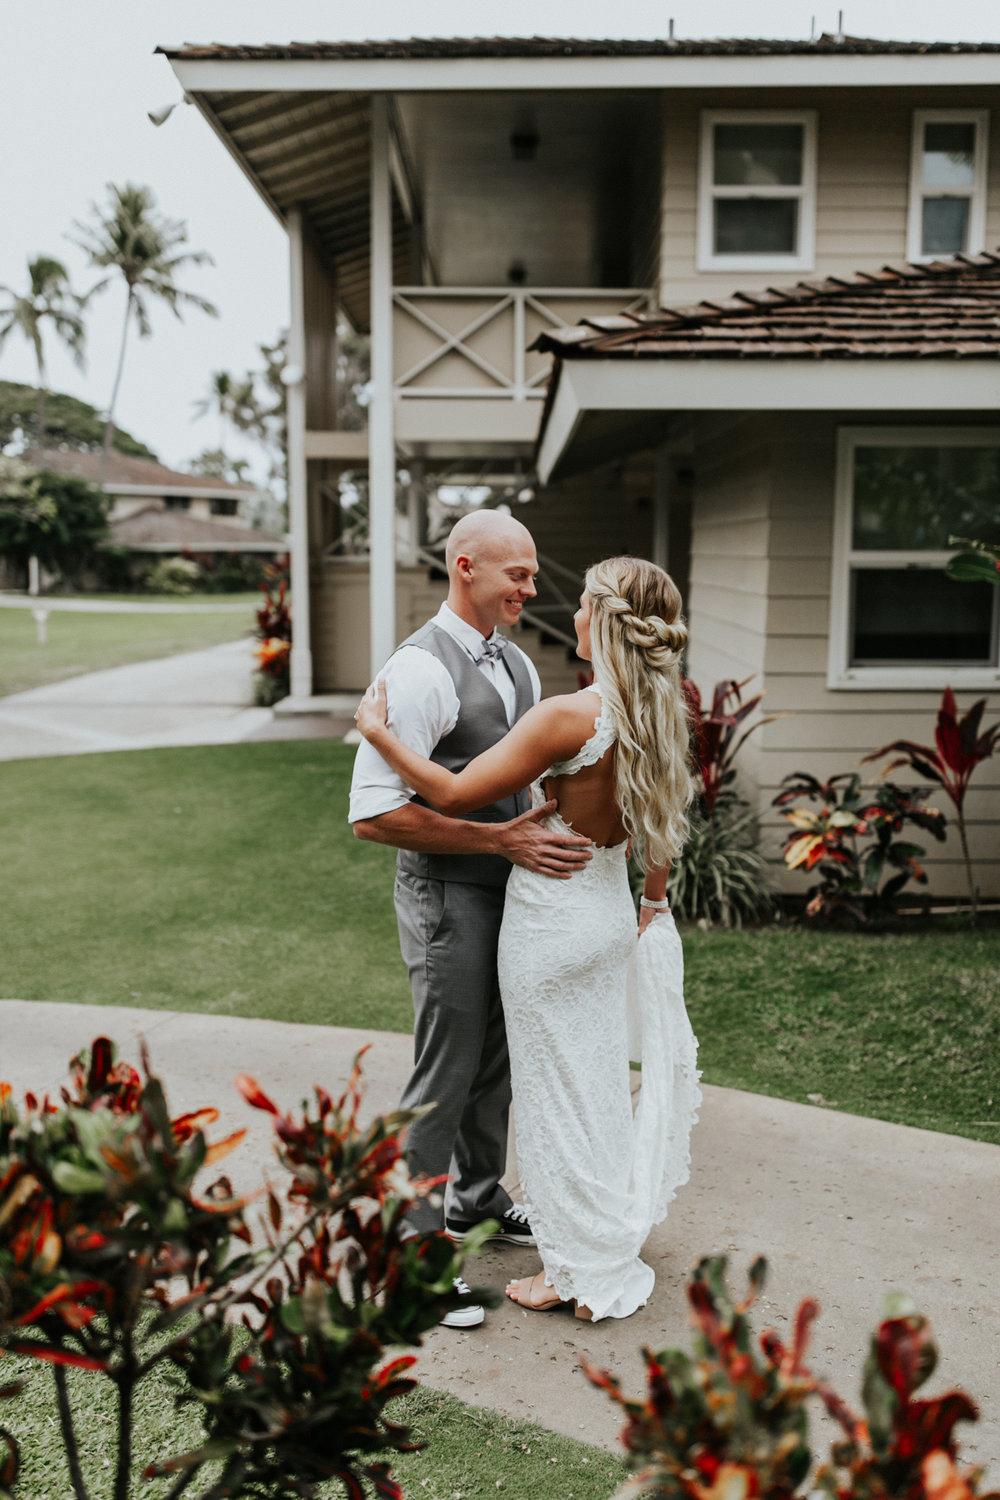 destination-wedding-photographer-hawaii-maui-elopement-34.jpg